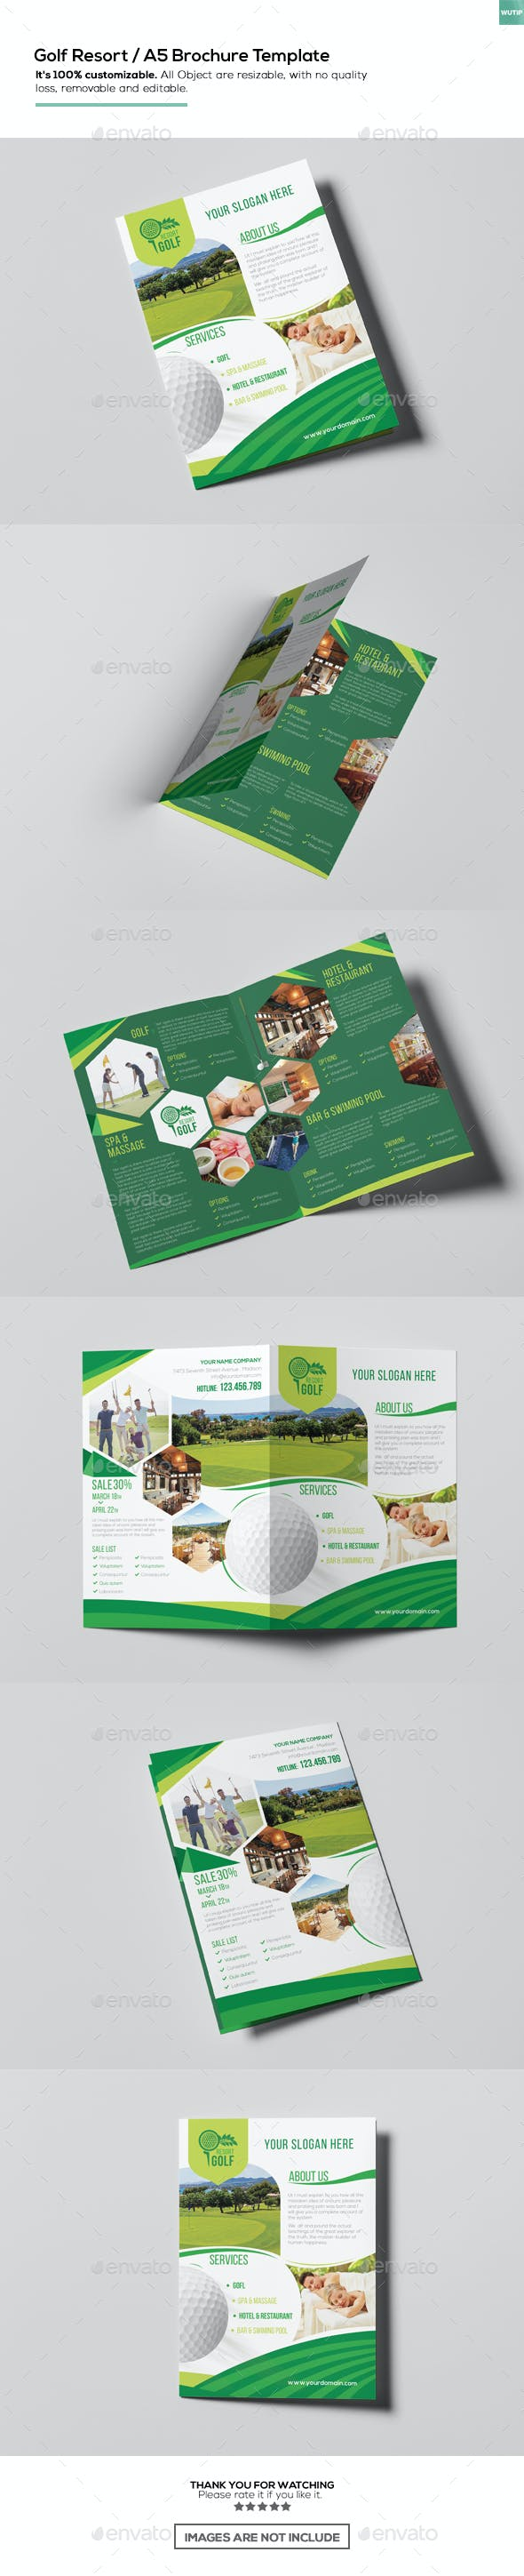 golf resort a5 brochure template by wutip2 graphicriver